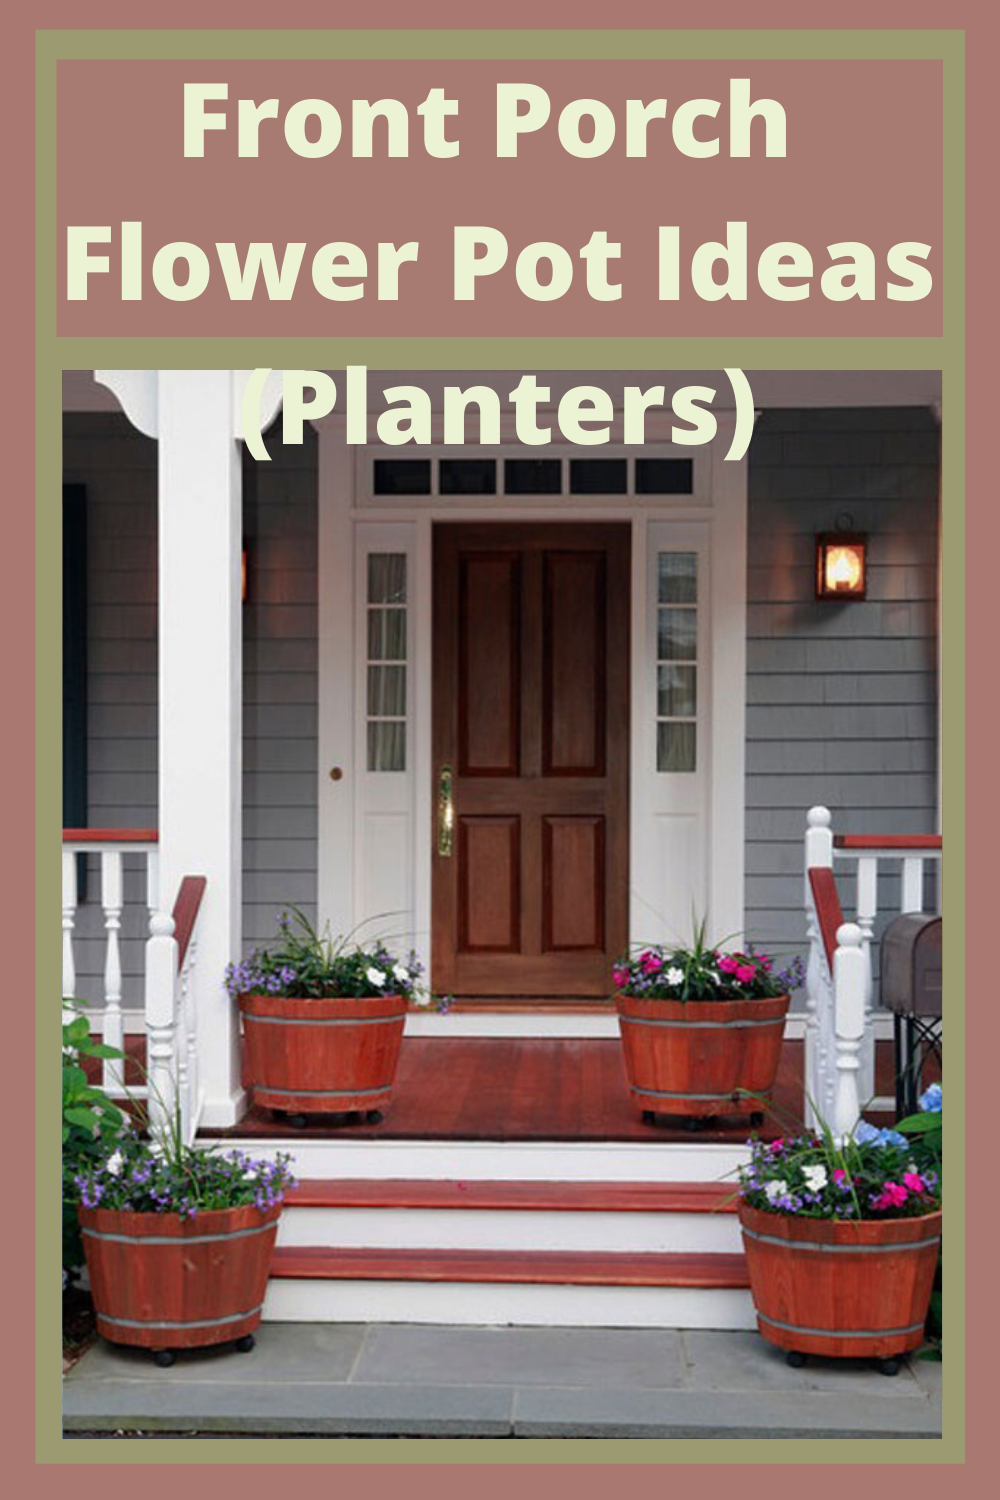 Planters go well in a garden but they also make front porches come to life. Packed with powerful perennials or annuals, the color creates gorgeous curb appeal all while making your porch happy. And you as well. Keep reading for quick and easy front porch flower pot ideas that make your porch POP! #frontporchdecor #frontporchideas #curbappeal #beesandrosesblog